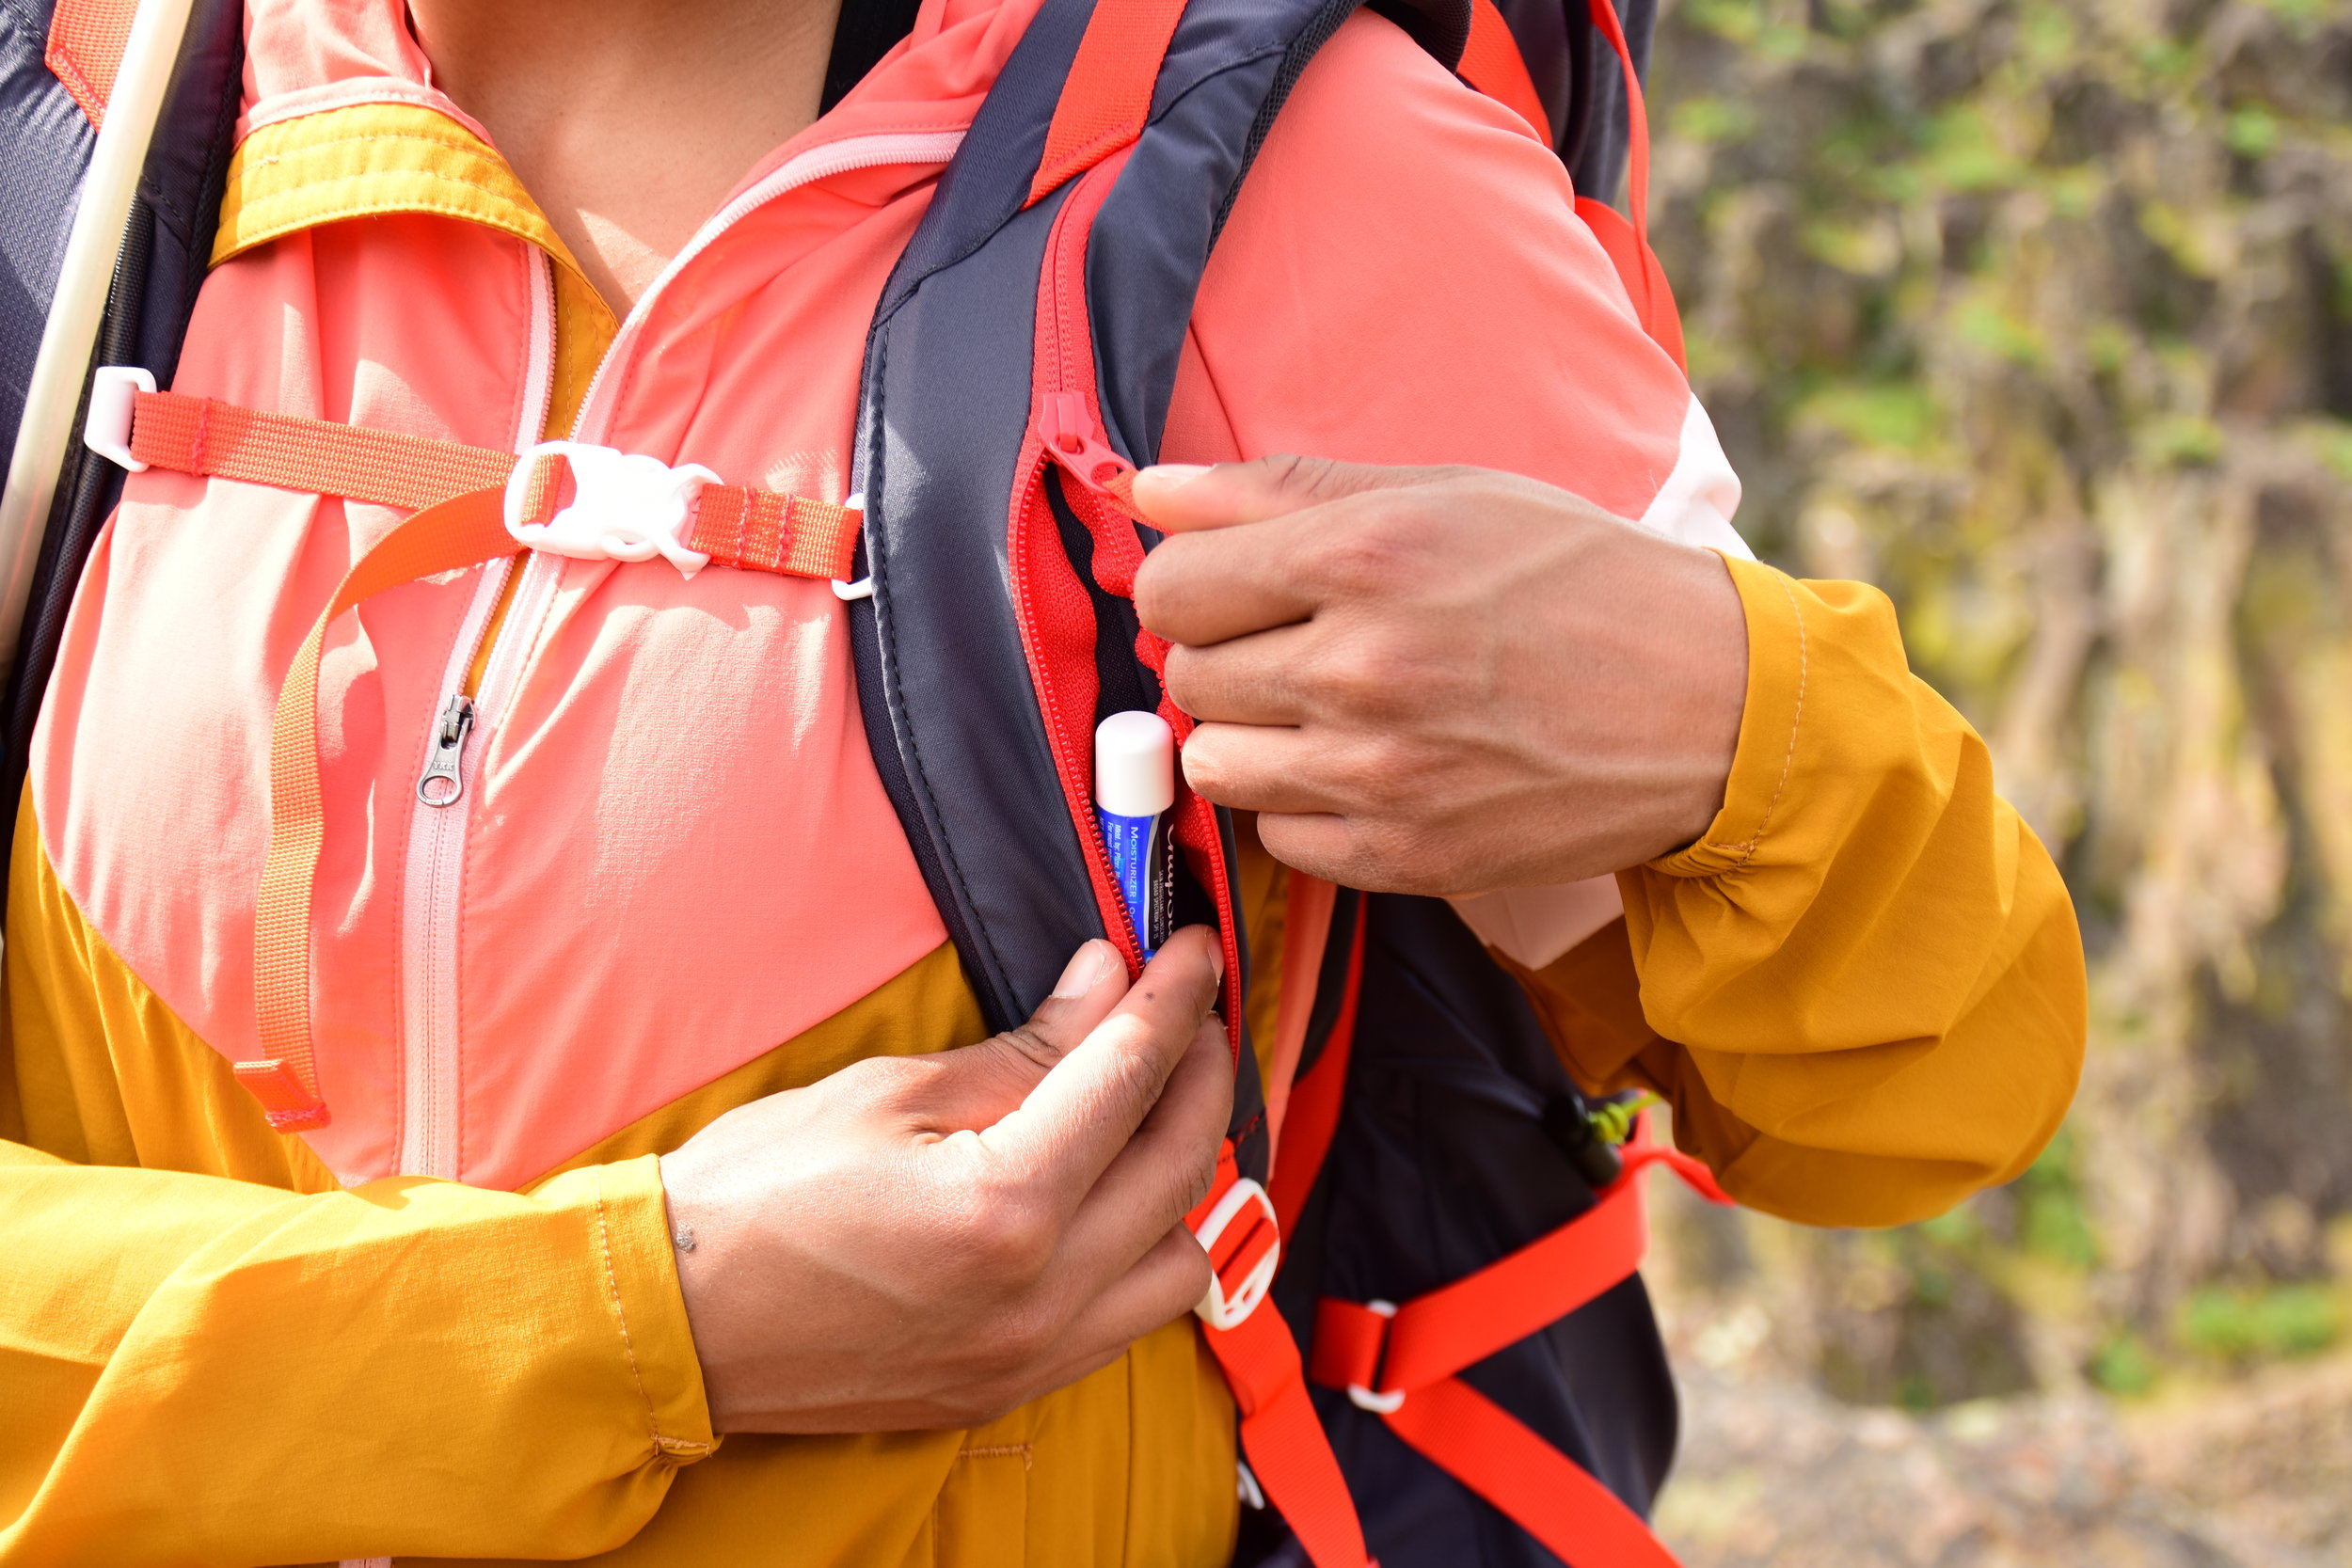 The vertical pocket on the shoulder strap made it incredibly convenient to store and access small items like lip balm or car keys.  Photo courtesy of Nathan Kaul